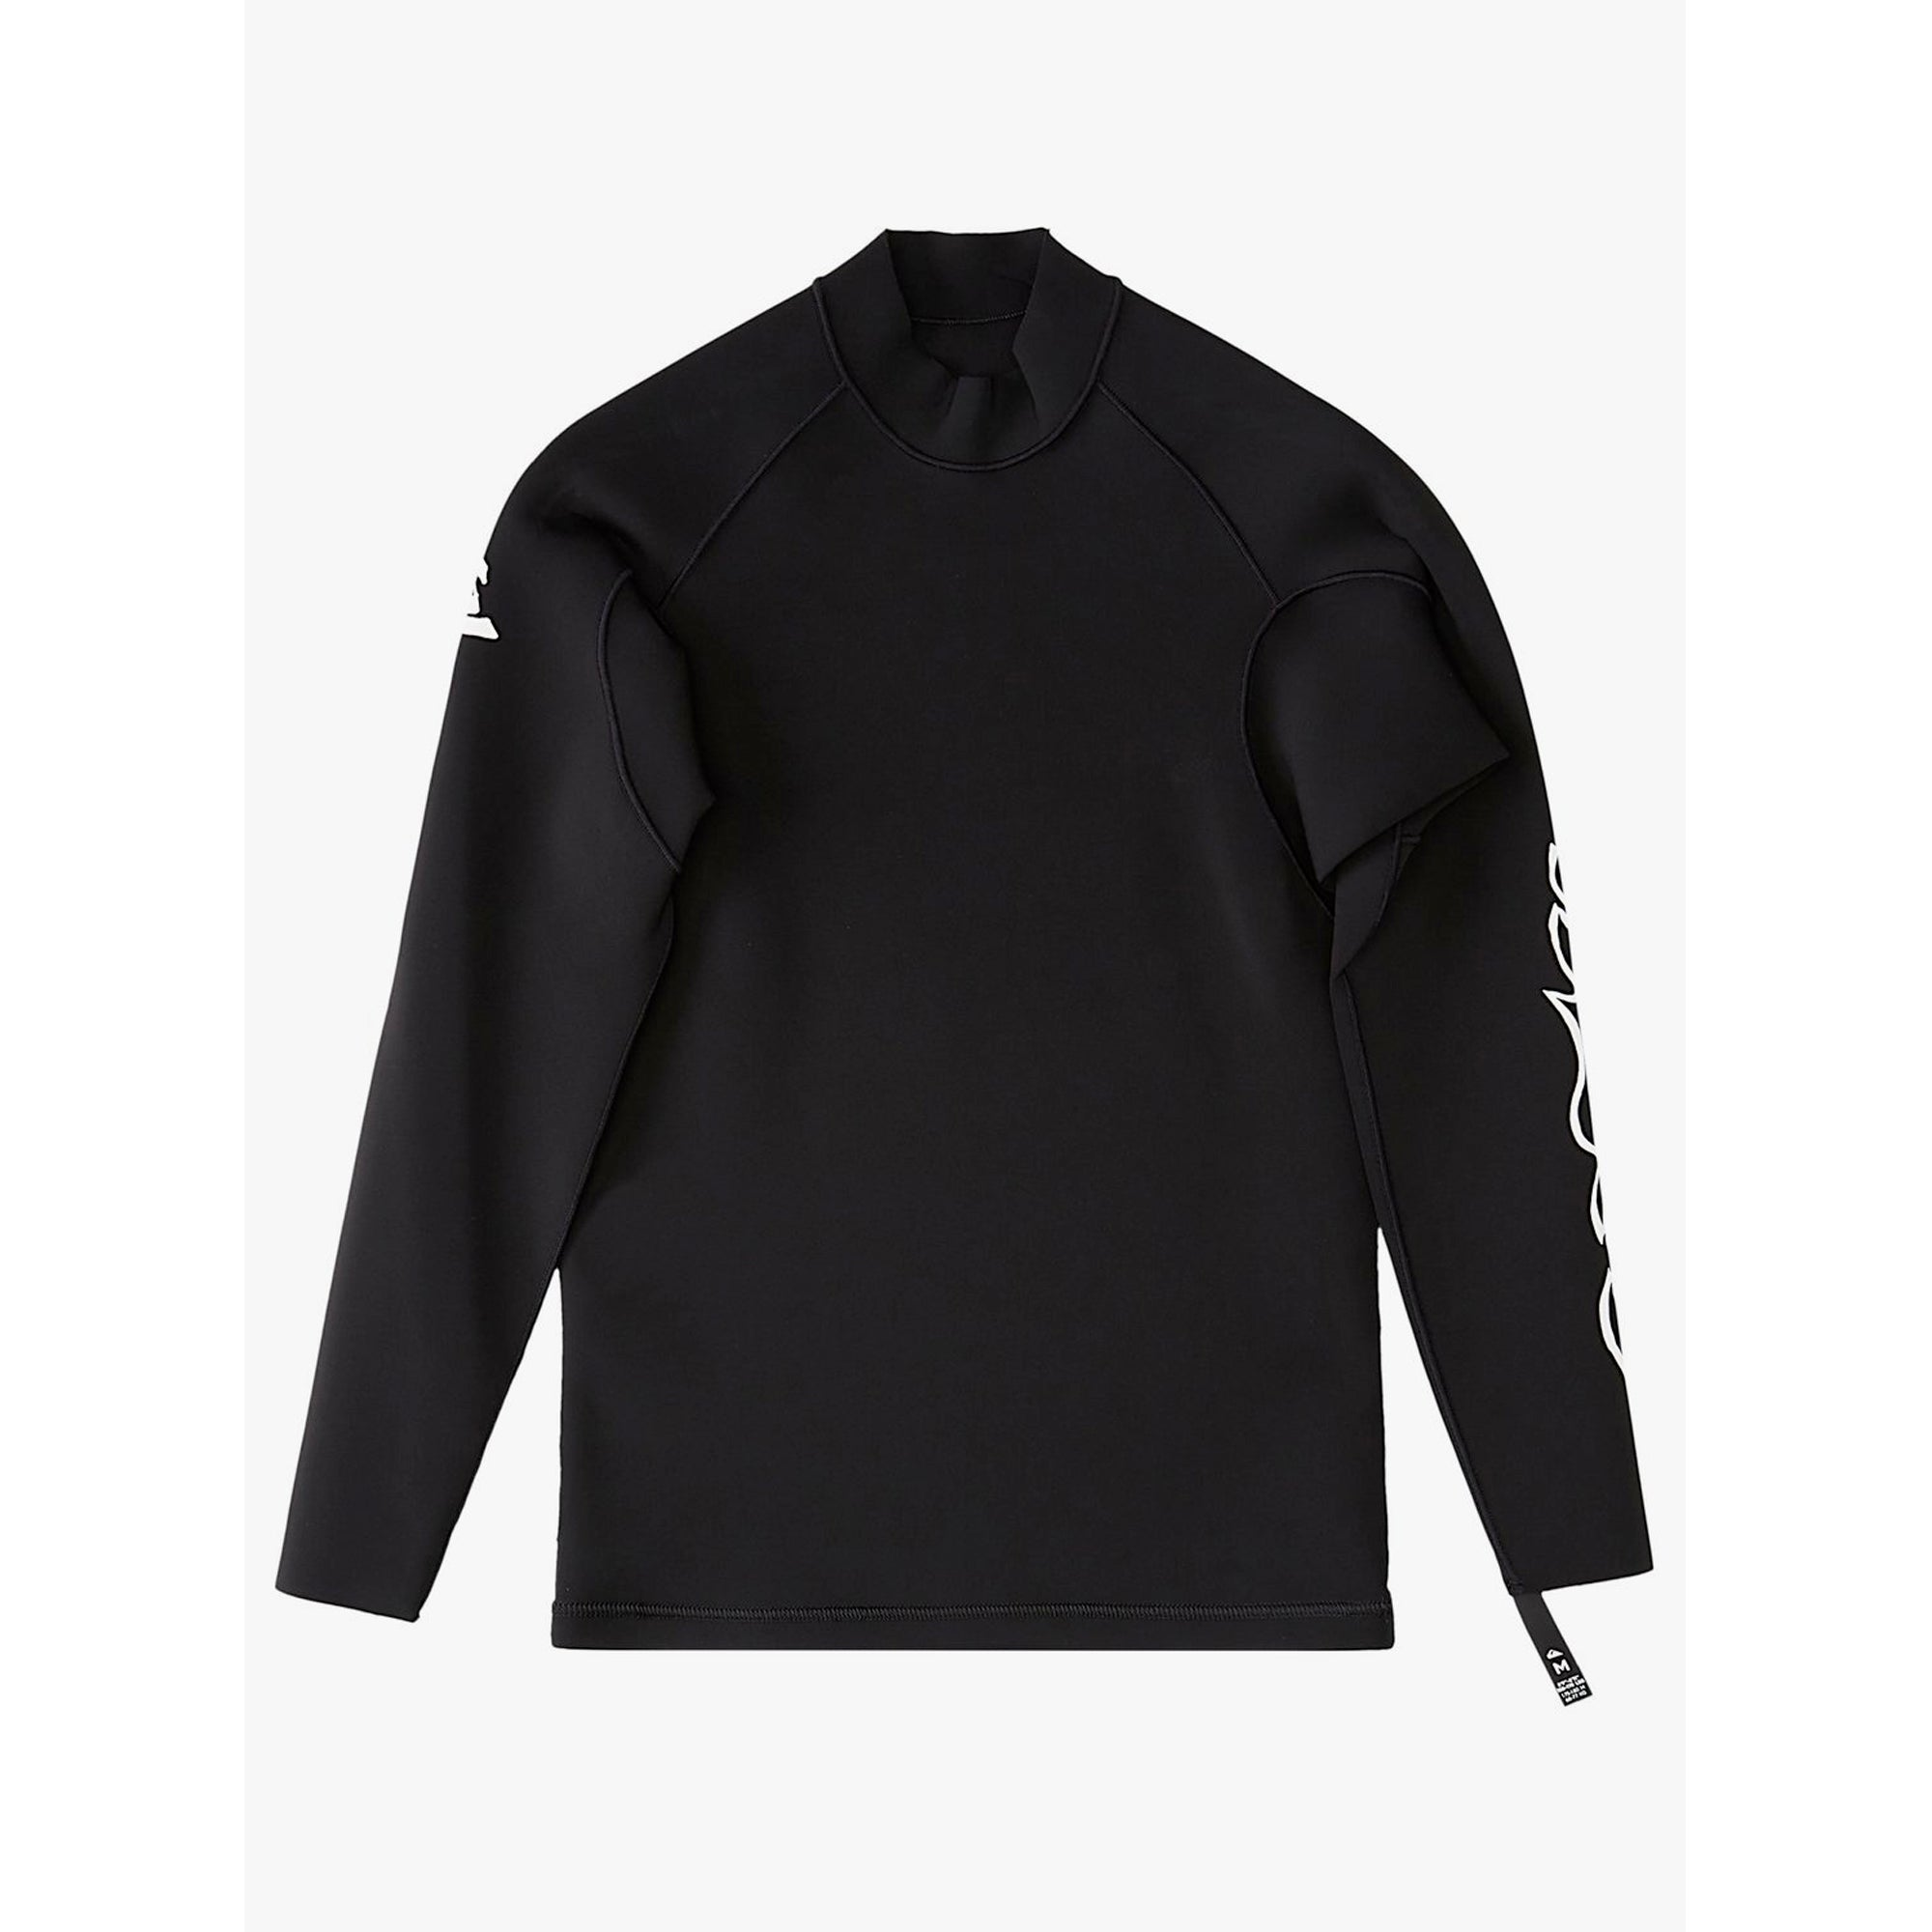 Quiksilver Highline Ltd. 2mm Men's L/S Reversible Wetsuit Top